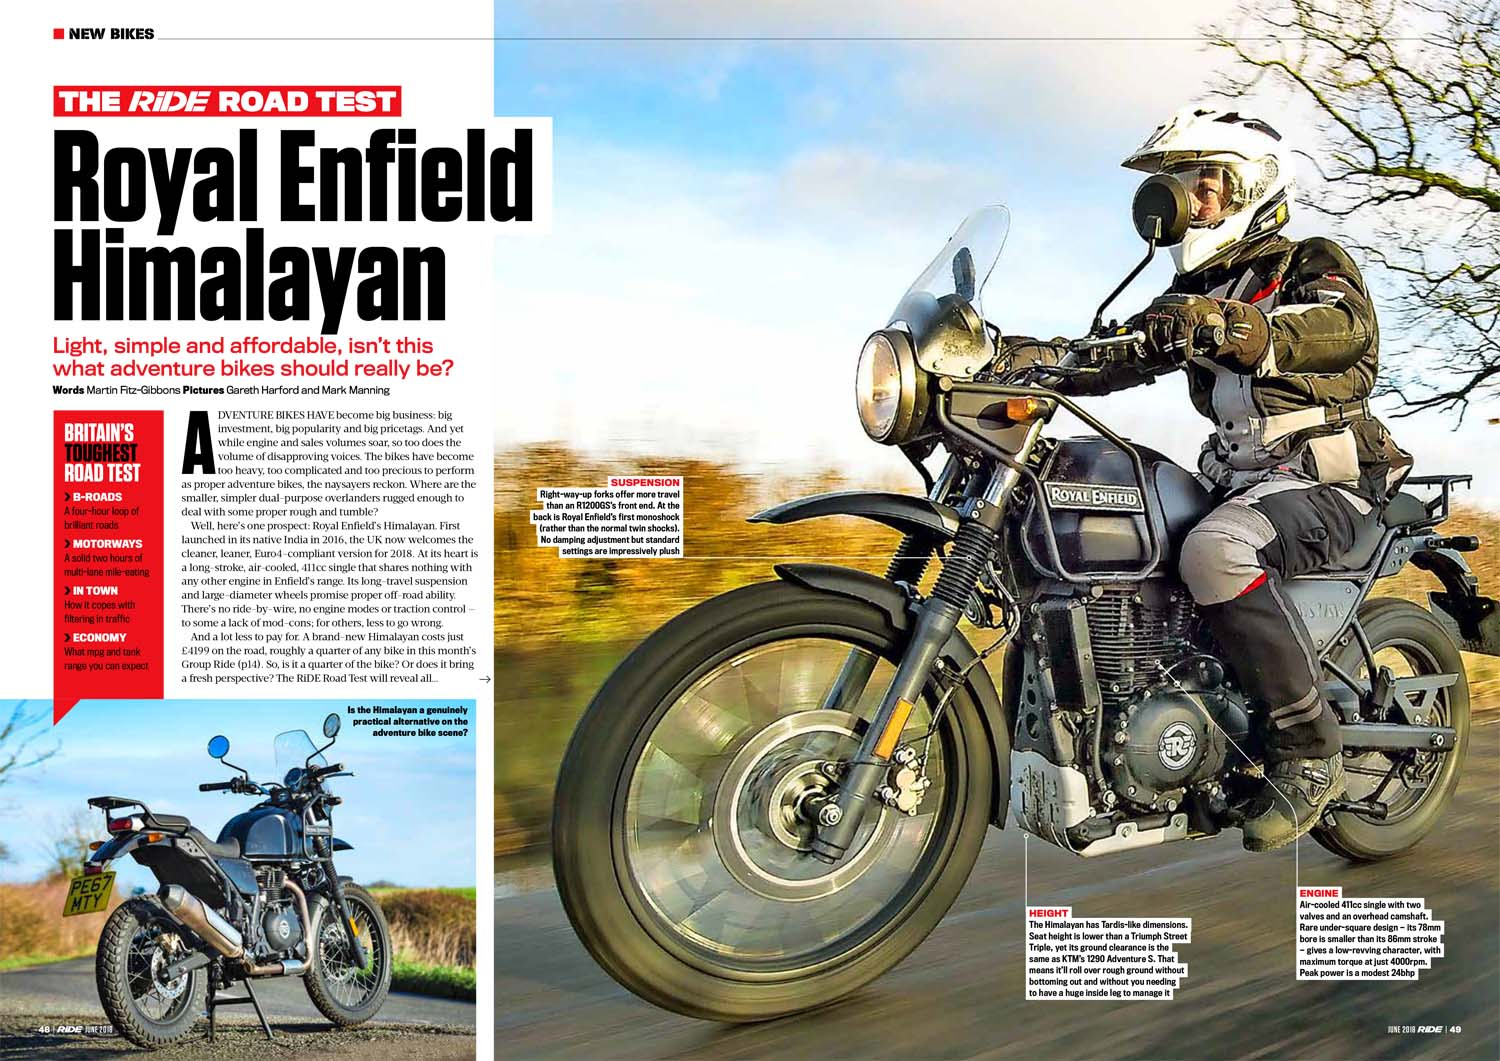 RiDE Road Test Enfield Himalayan